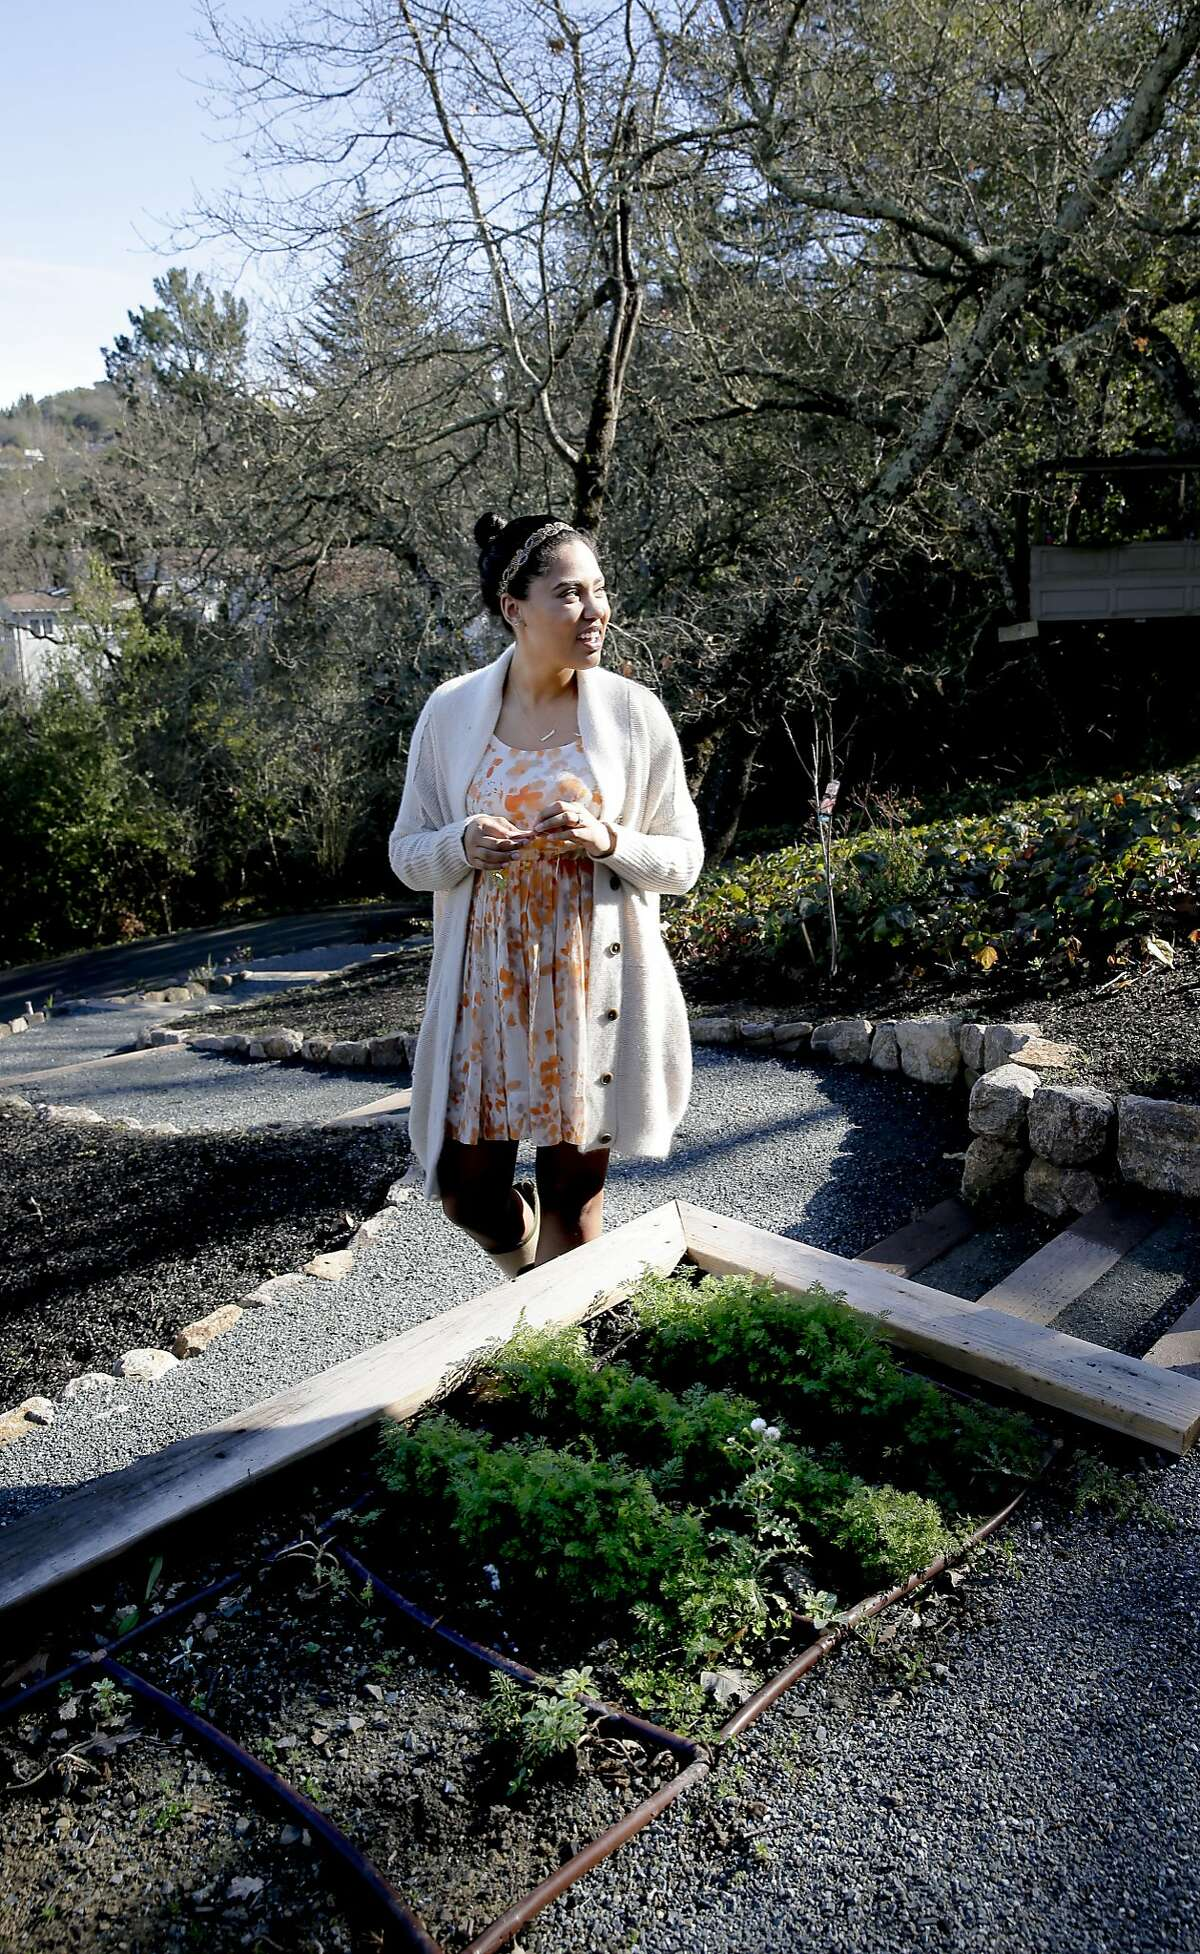 Ayesha Curry the wife of Warriors basketball star Stephen Curry with a small winter garden where she grows carrots at their Orinda, Calif. home, as seen on Tues. January, 20, 2015.